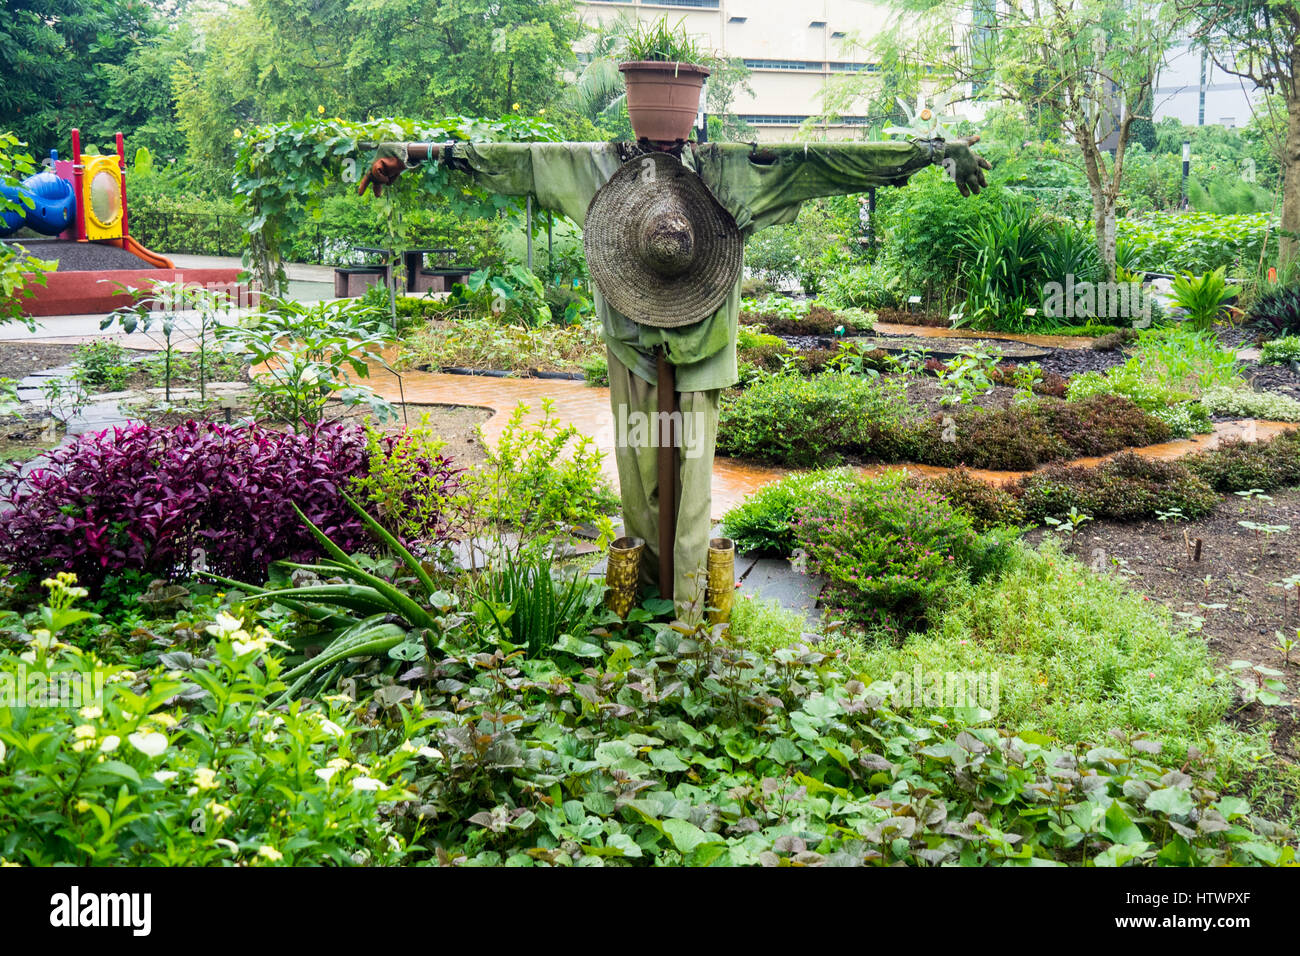 a-scarecrow-in-the-middle-of-a-green-garden-in-hortpark-singapore-HTWPXF.jpg